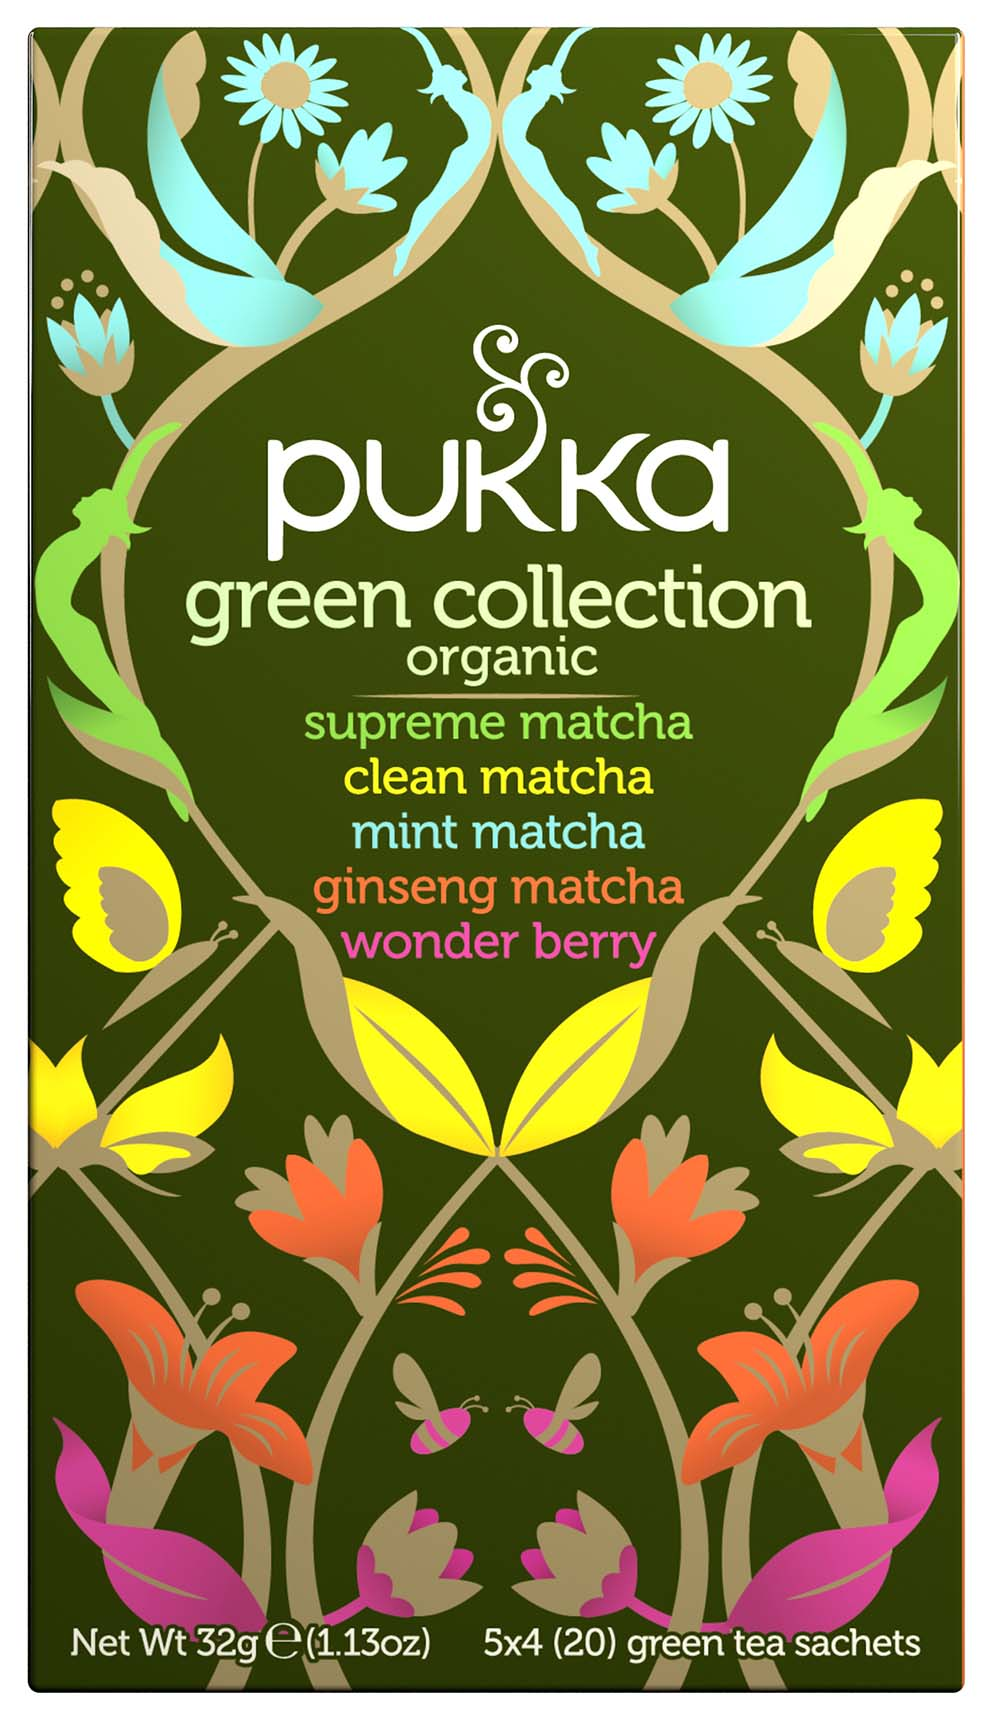 pukka green collection